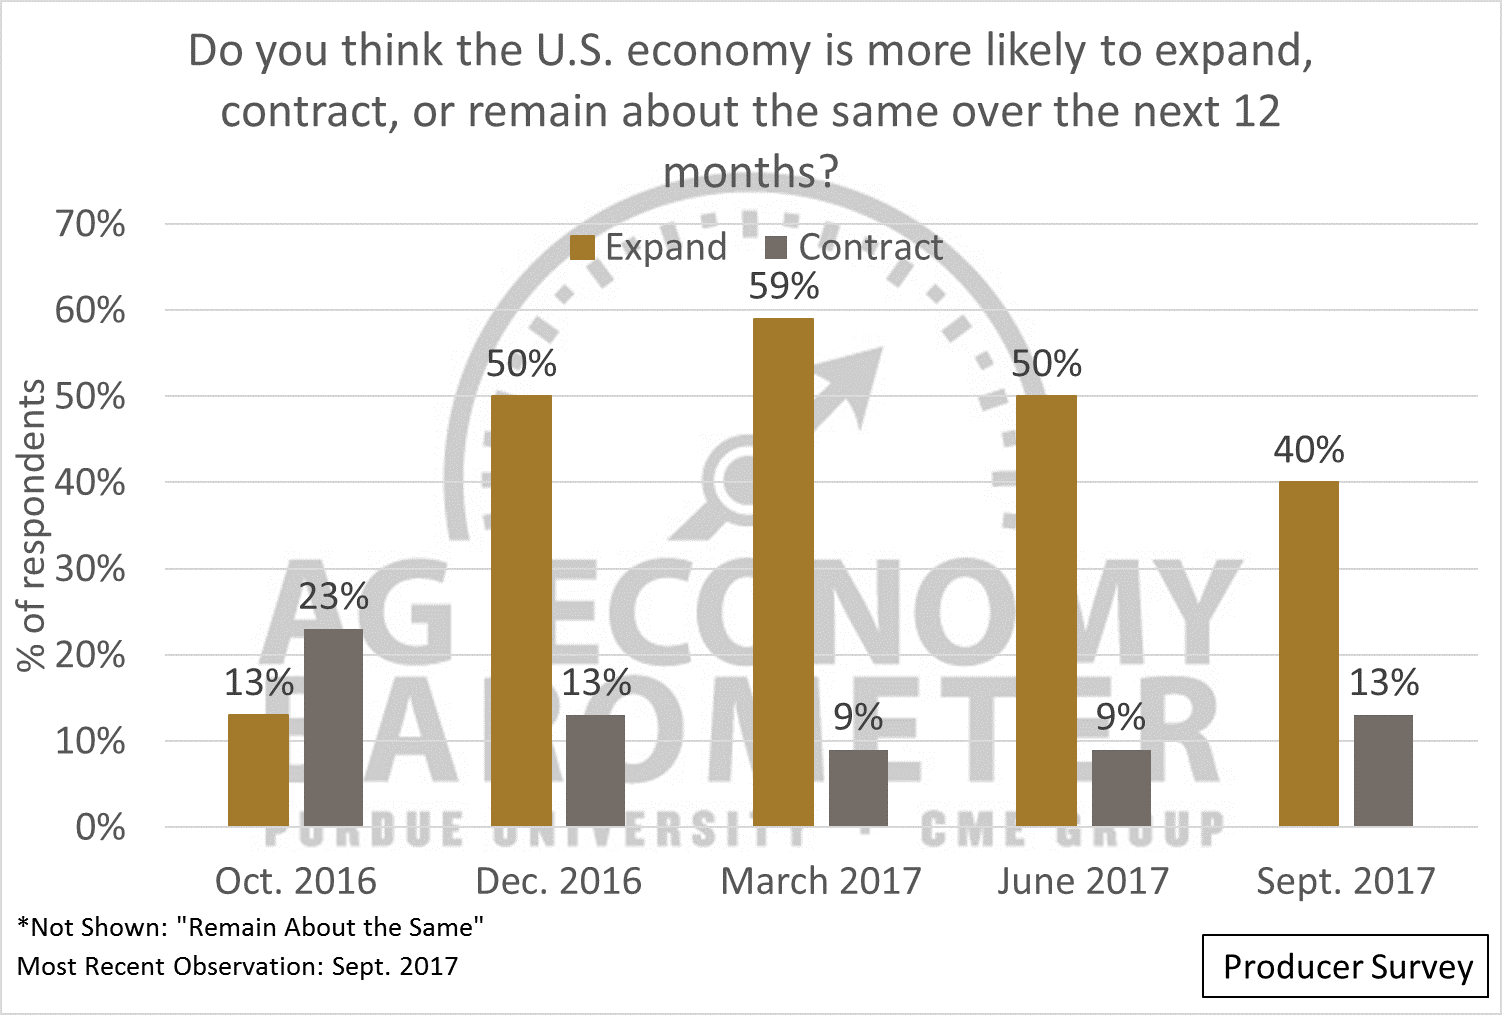 Figure 3. Producers Expectation about the U.S. economy over the next 12 months.